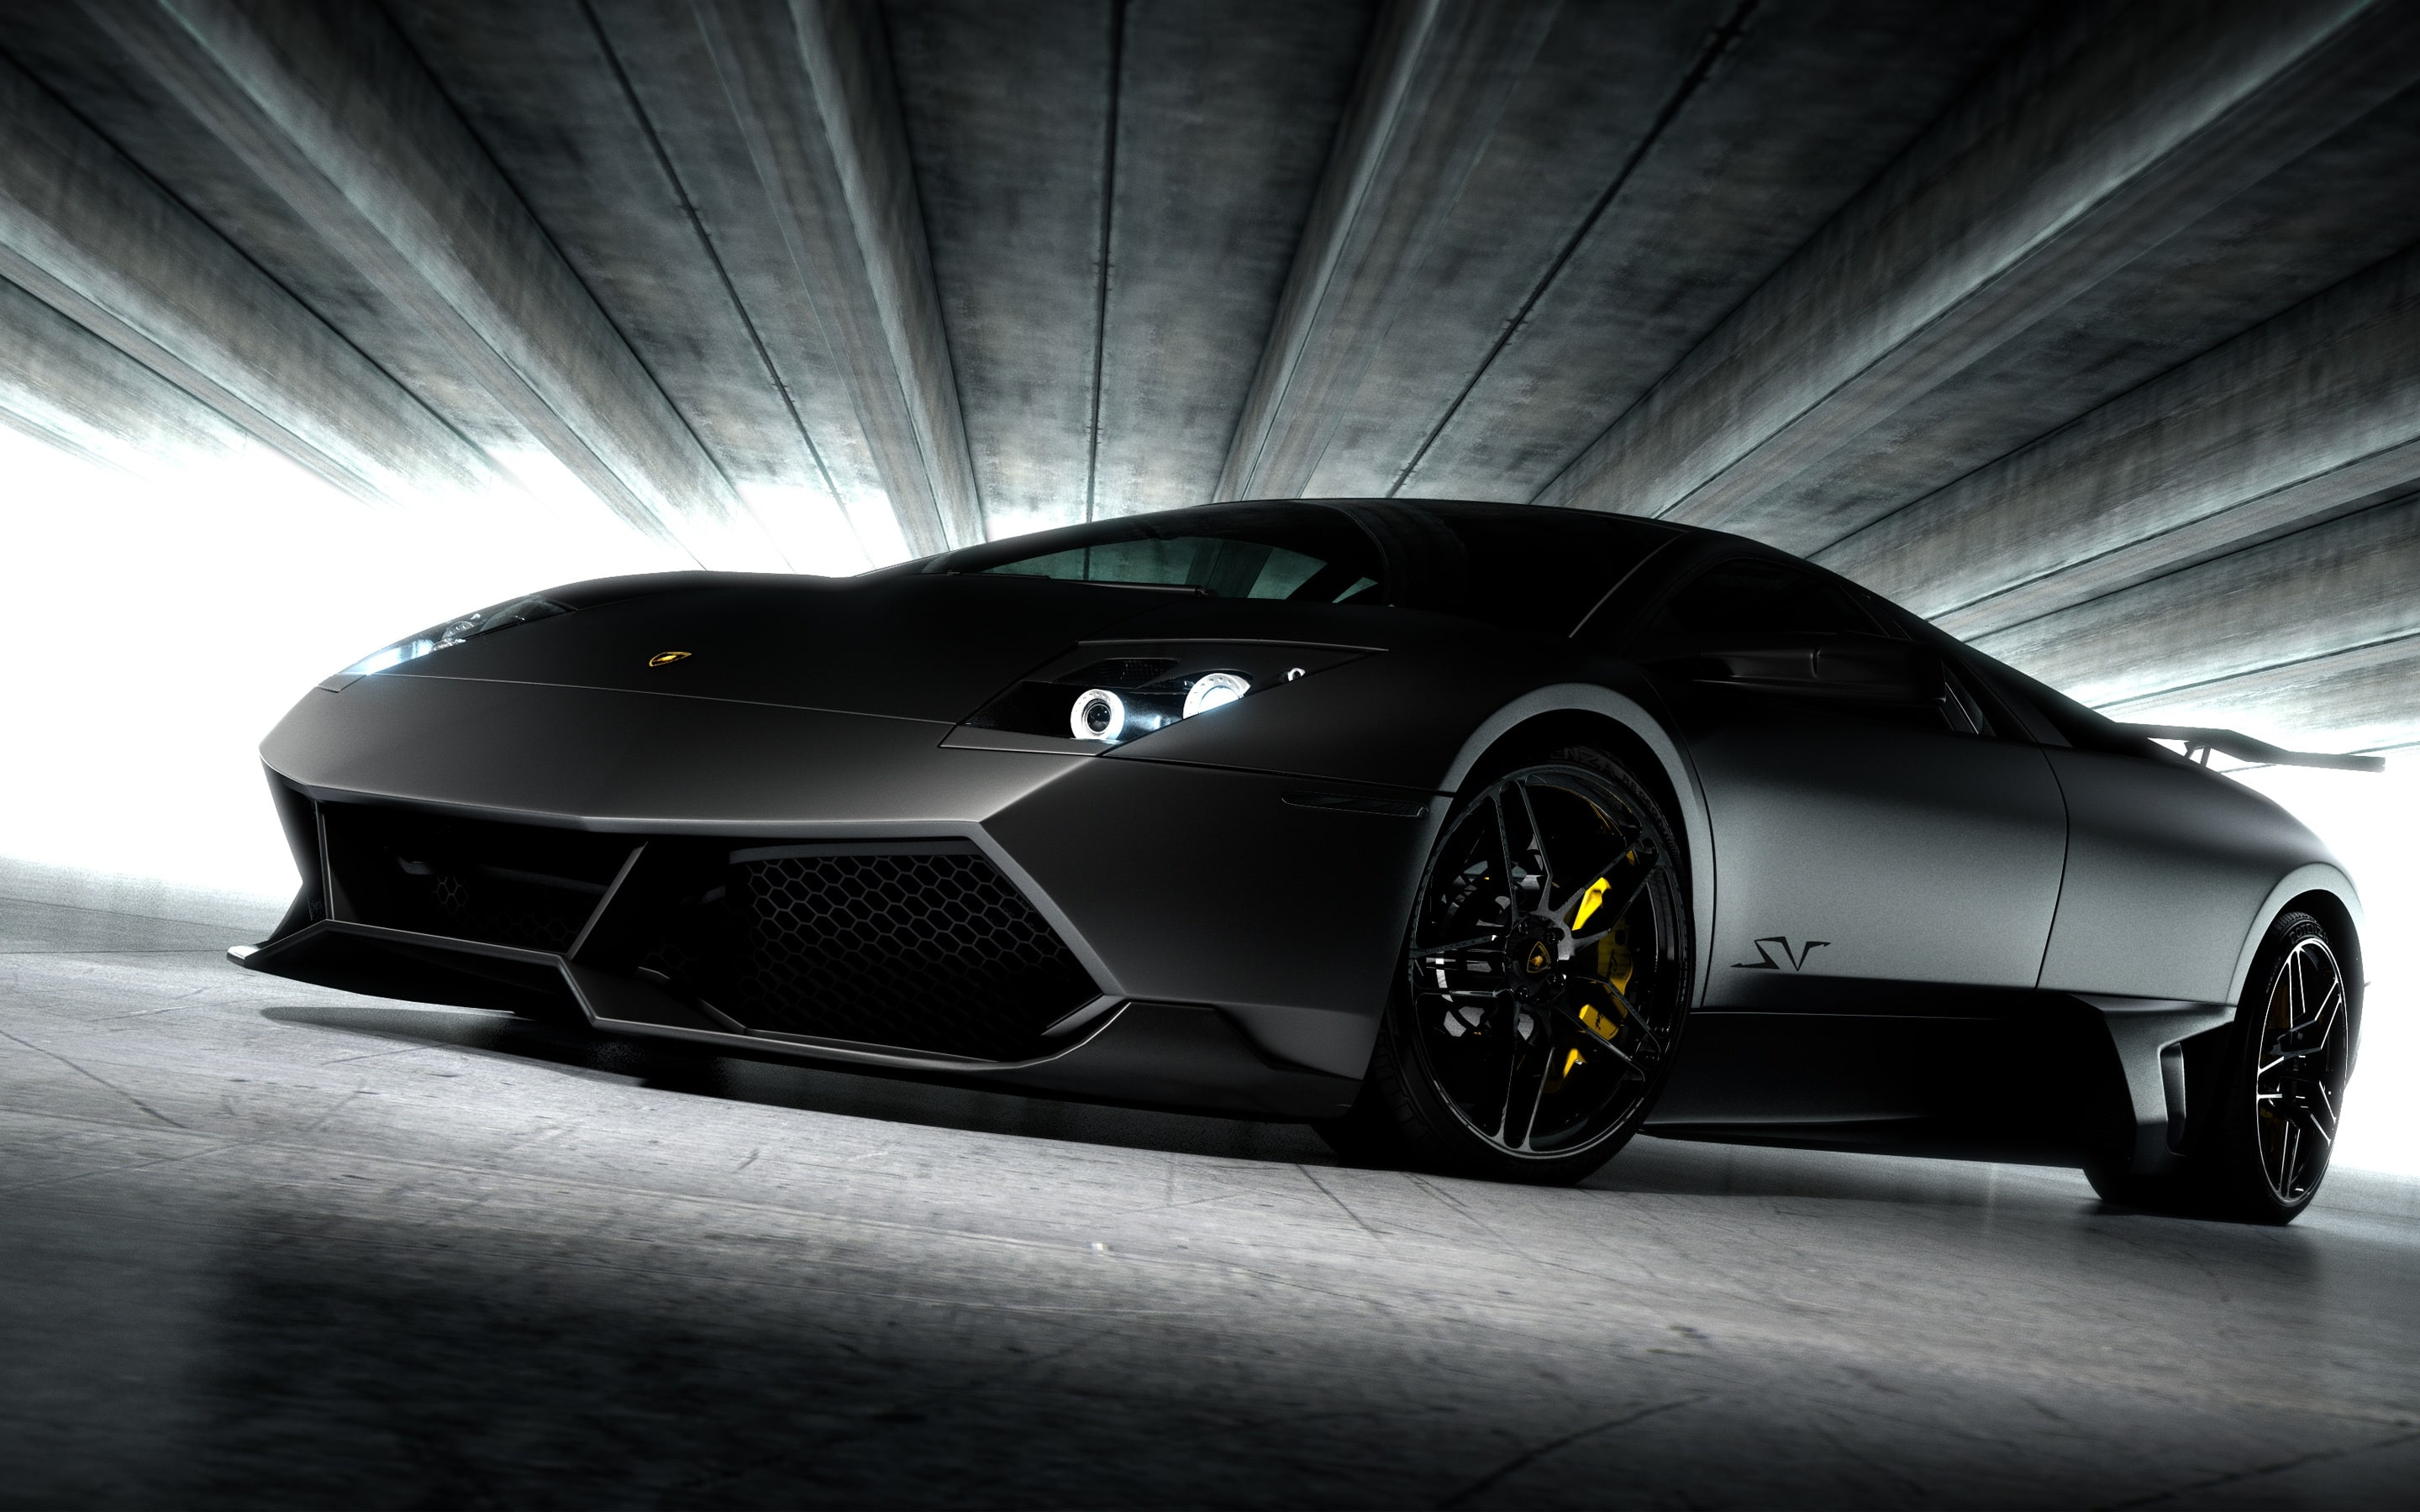 Lamborghini Computer Wallpapers